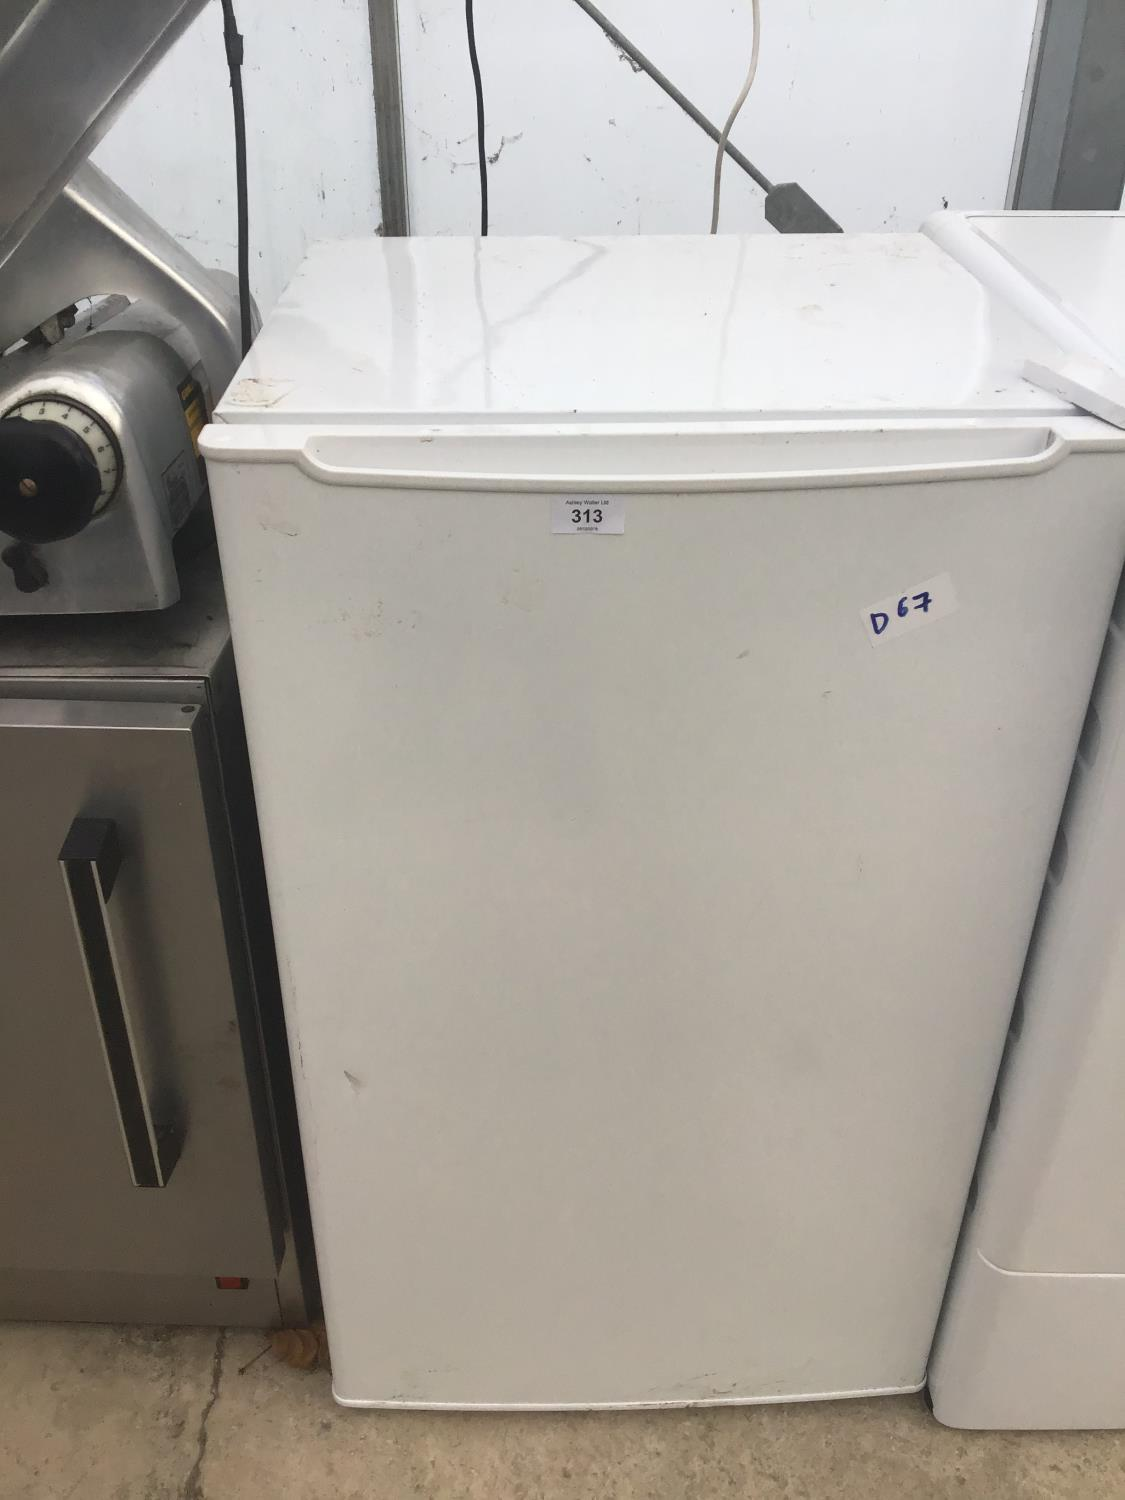 Lot 313 - AN UNDER COUNTER FRIDGE IN NEED OF LIGHT CLEAN AND IN WORKING ORDER